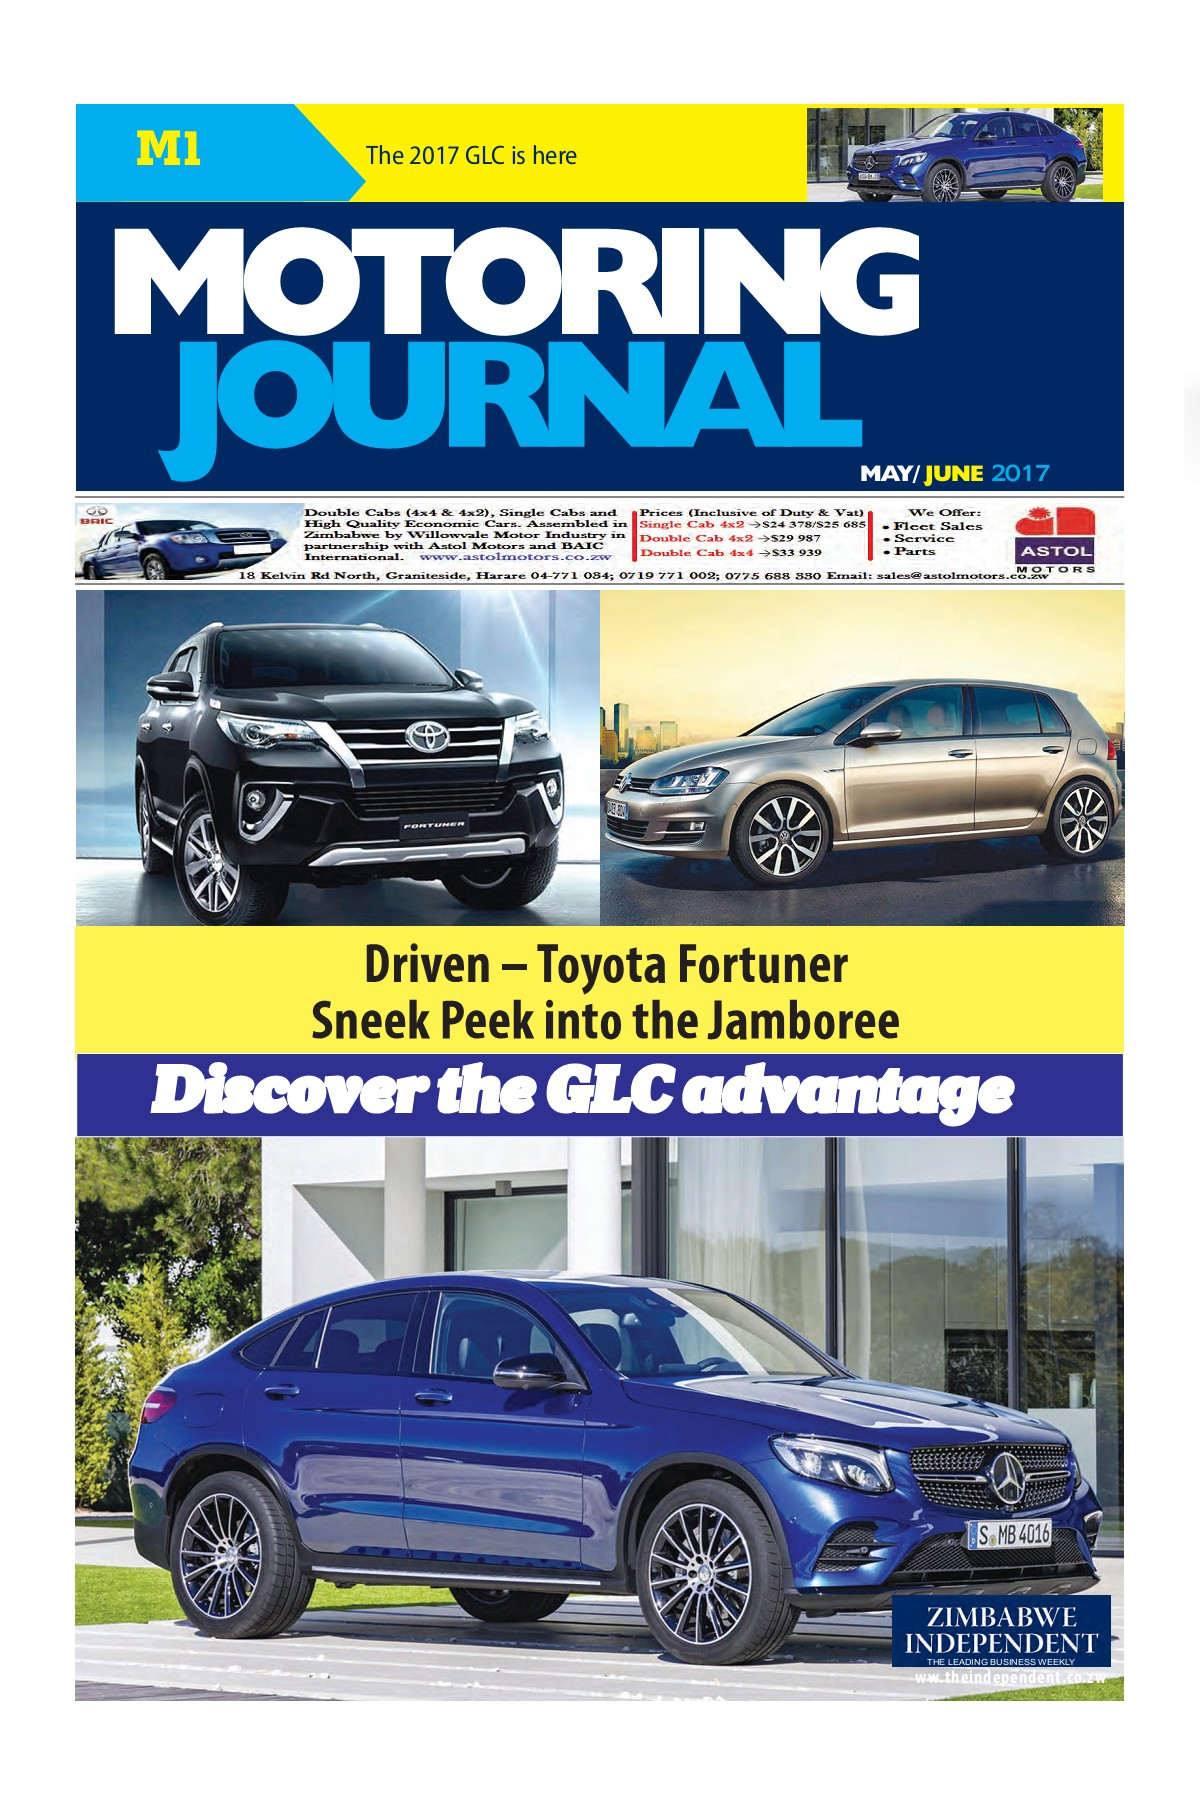 MOTORING JOURNAL May June 2017 Pages 1 16 Text Version